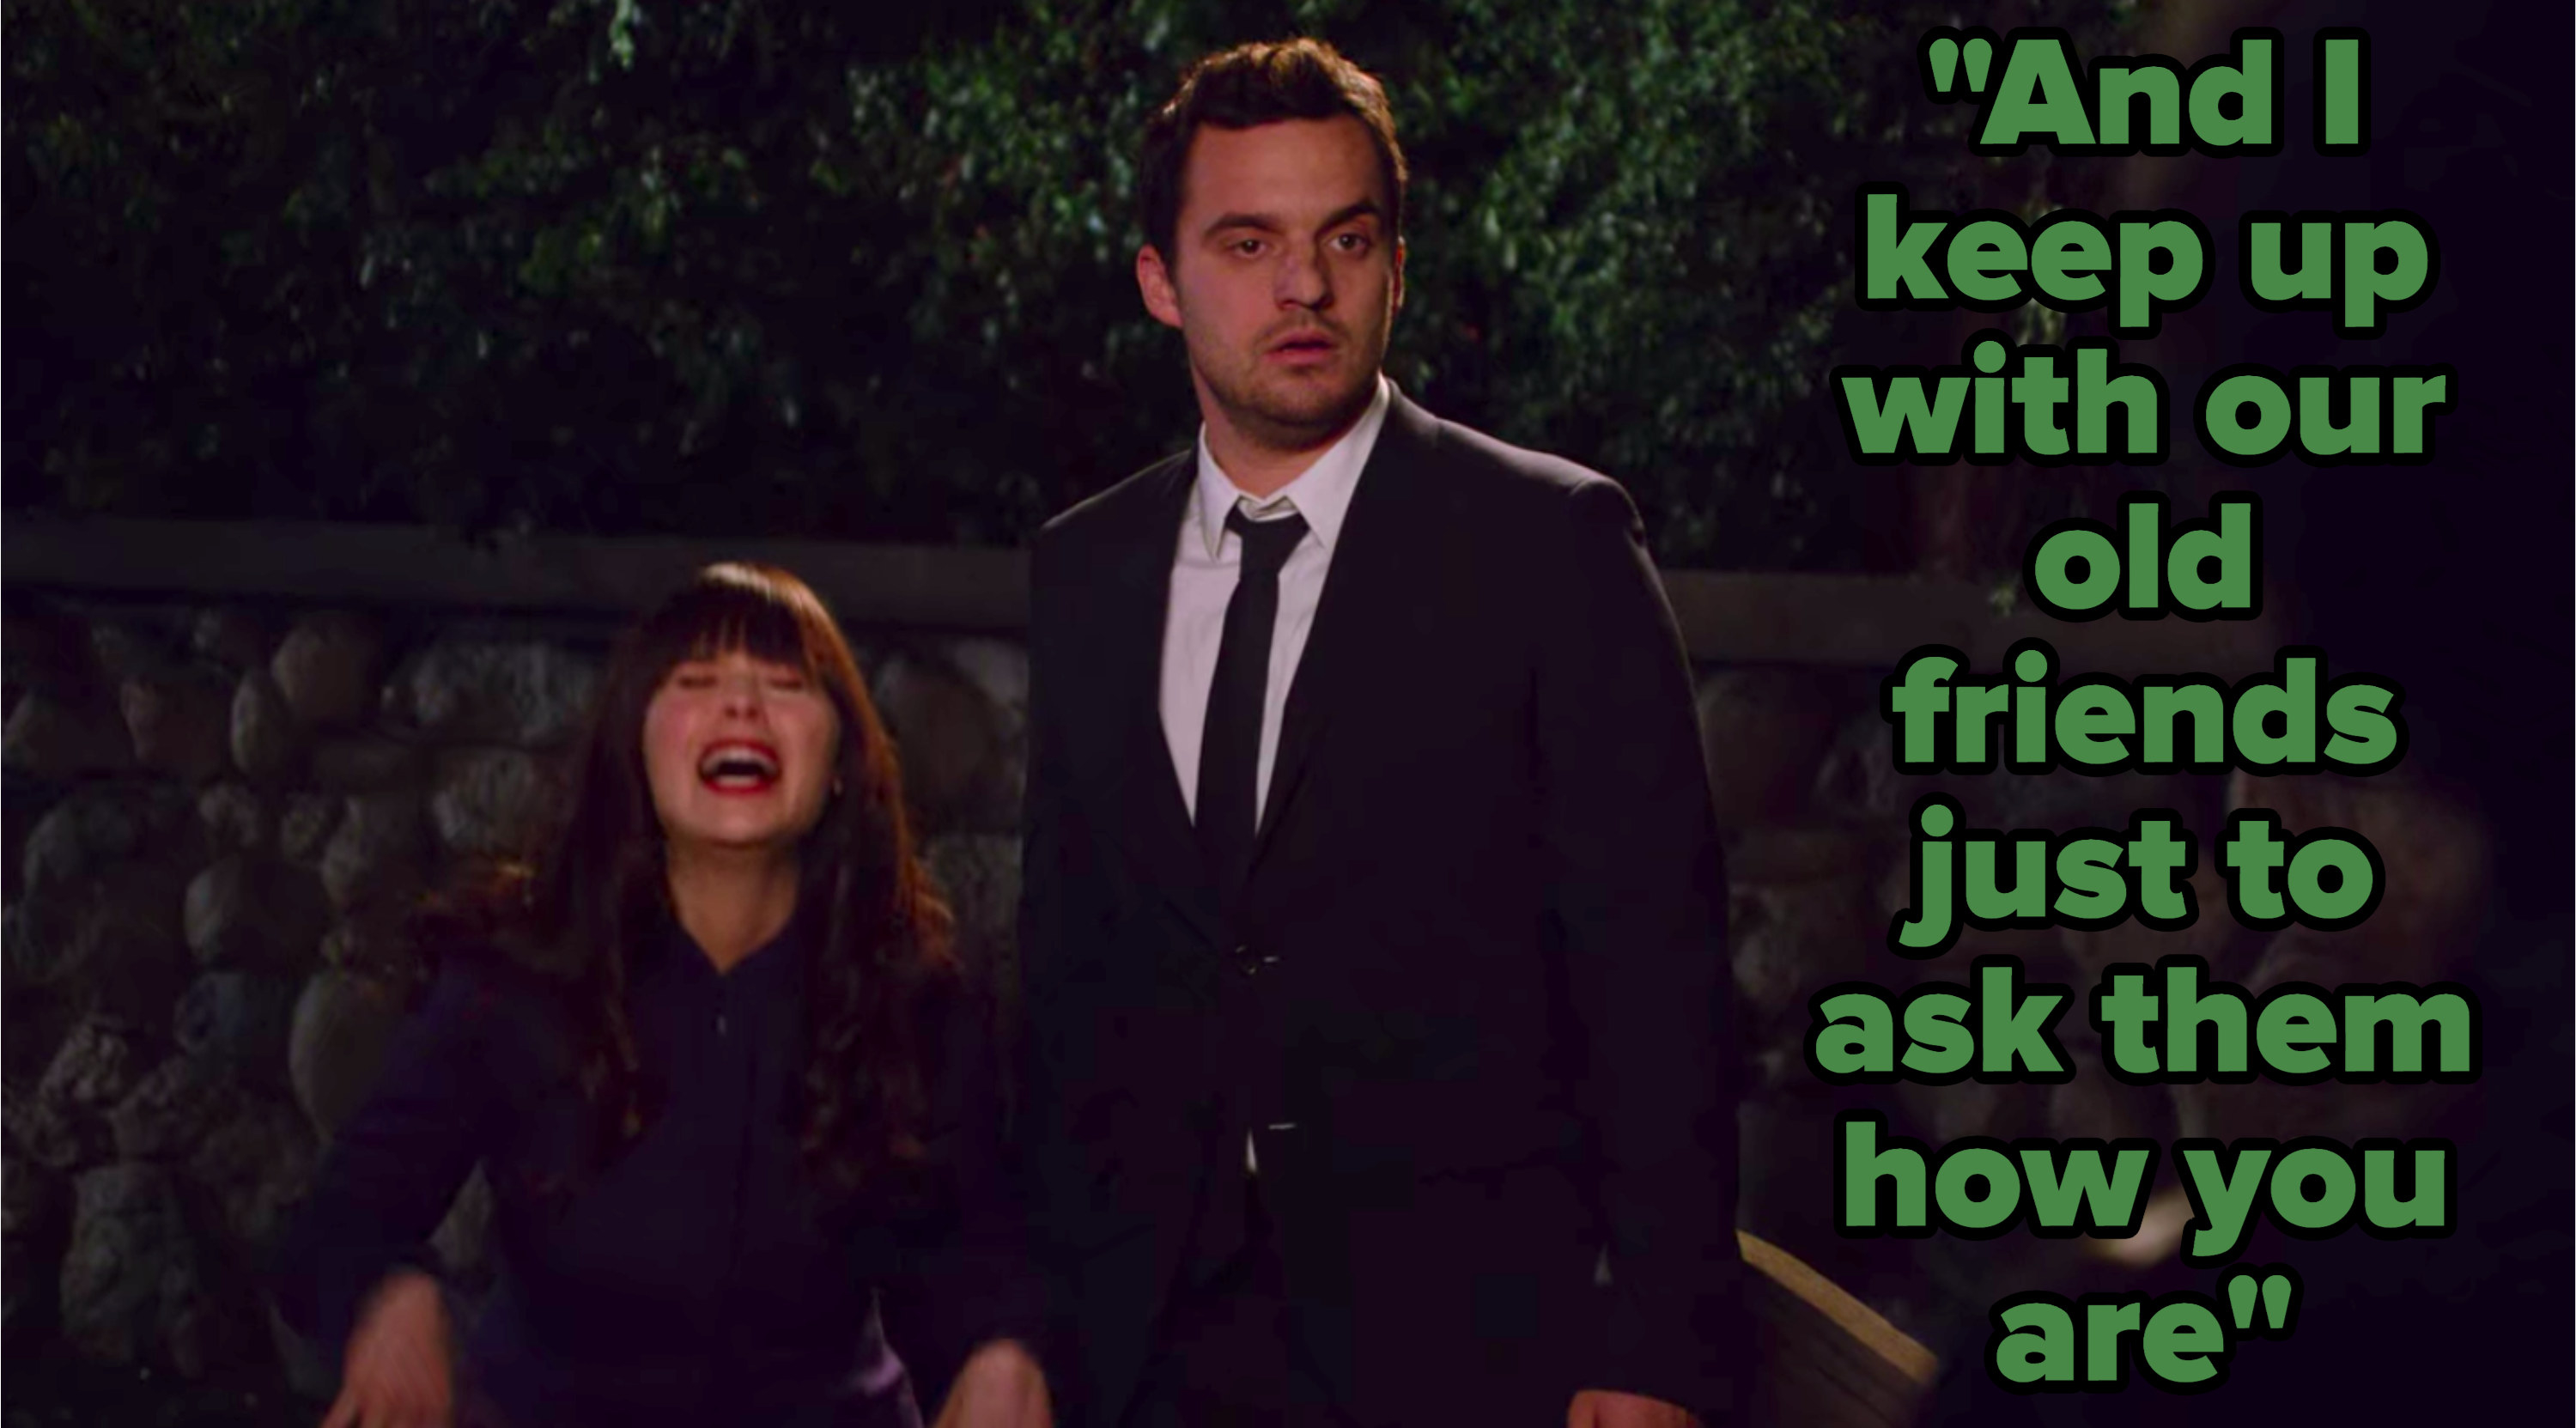 """""""And I keep up with our old friends just to ask them how you are"""" written over Jess and Nick from """"New Girl"""" freaking out"""